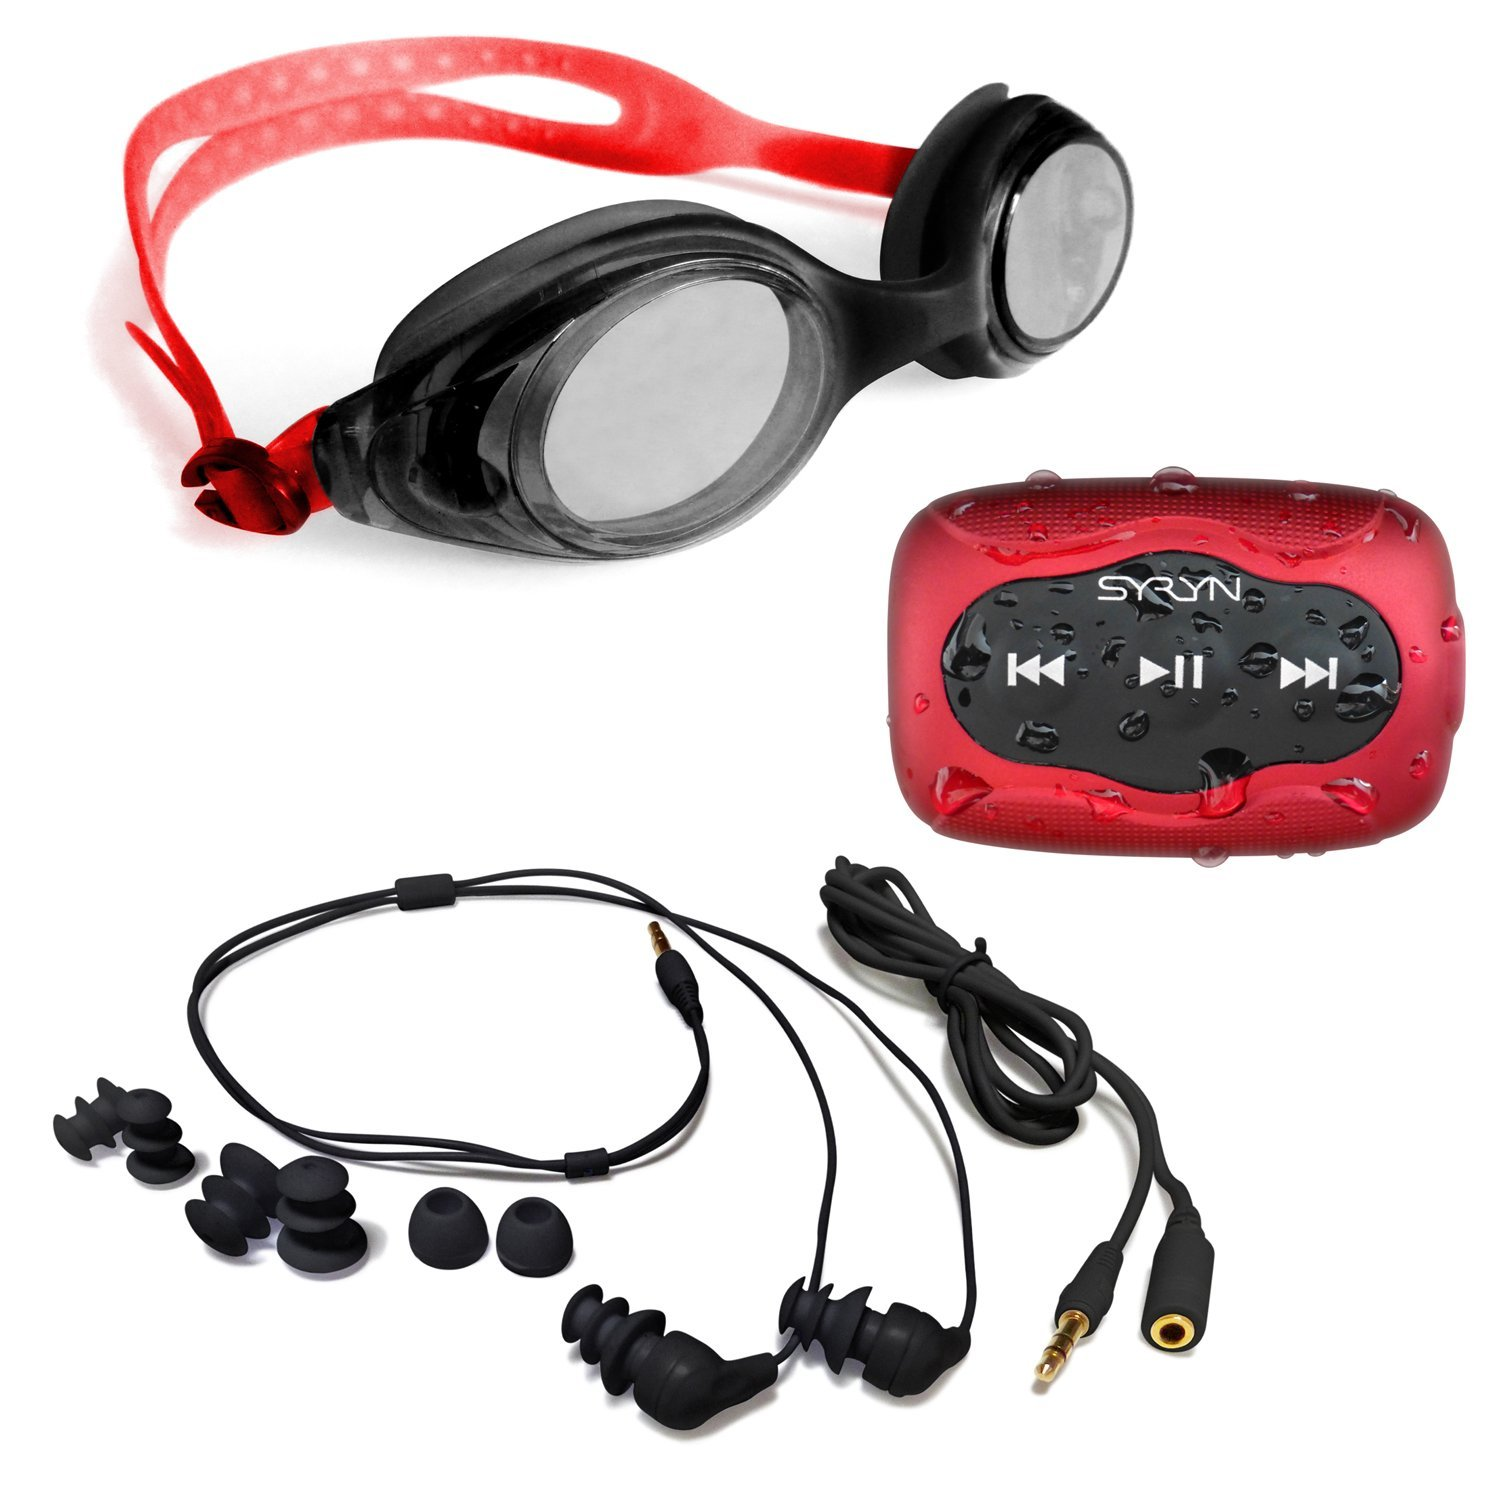 SYRYN MP3 Player With Swimbuds Headphones